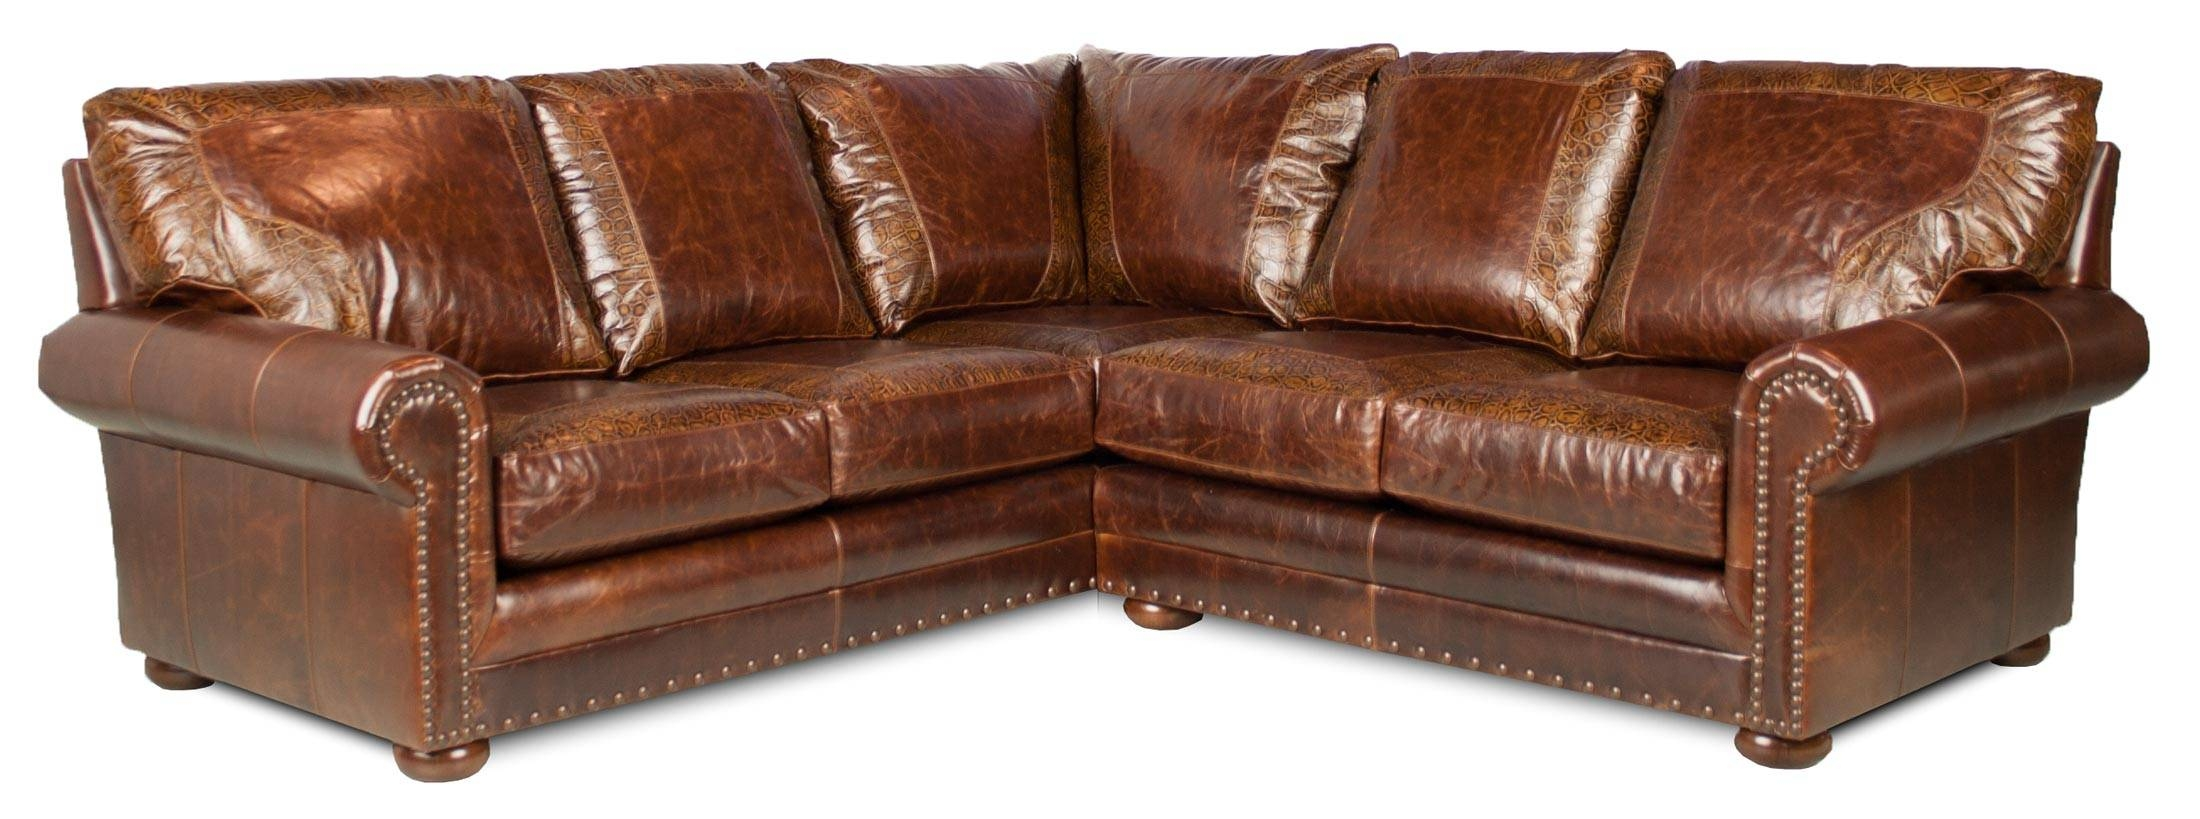 ... Custom Leather Sectional Sofa by The Best Austin Sectional Sofa ...  sc 1 st  Home Design Inpiration 2017 : custom leather sectional sofa - Sectionals, Sofas & Couches